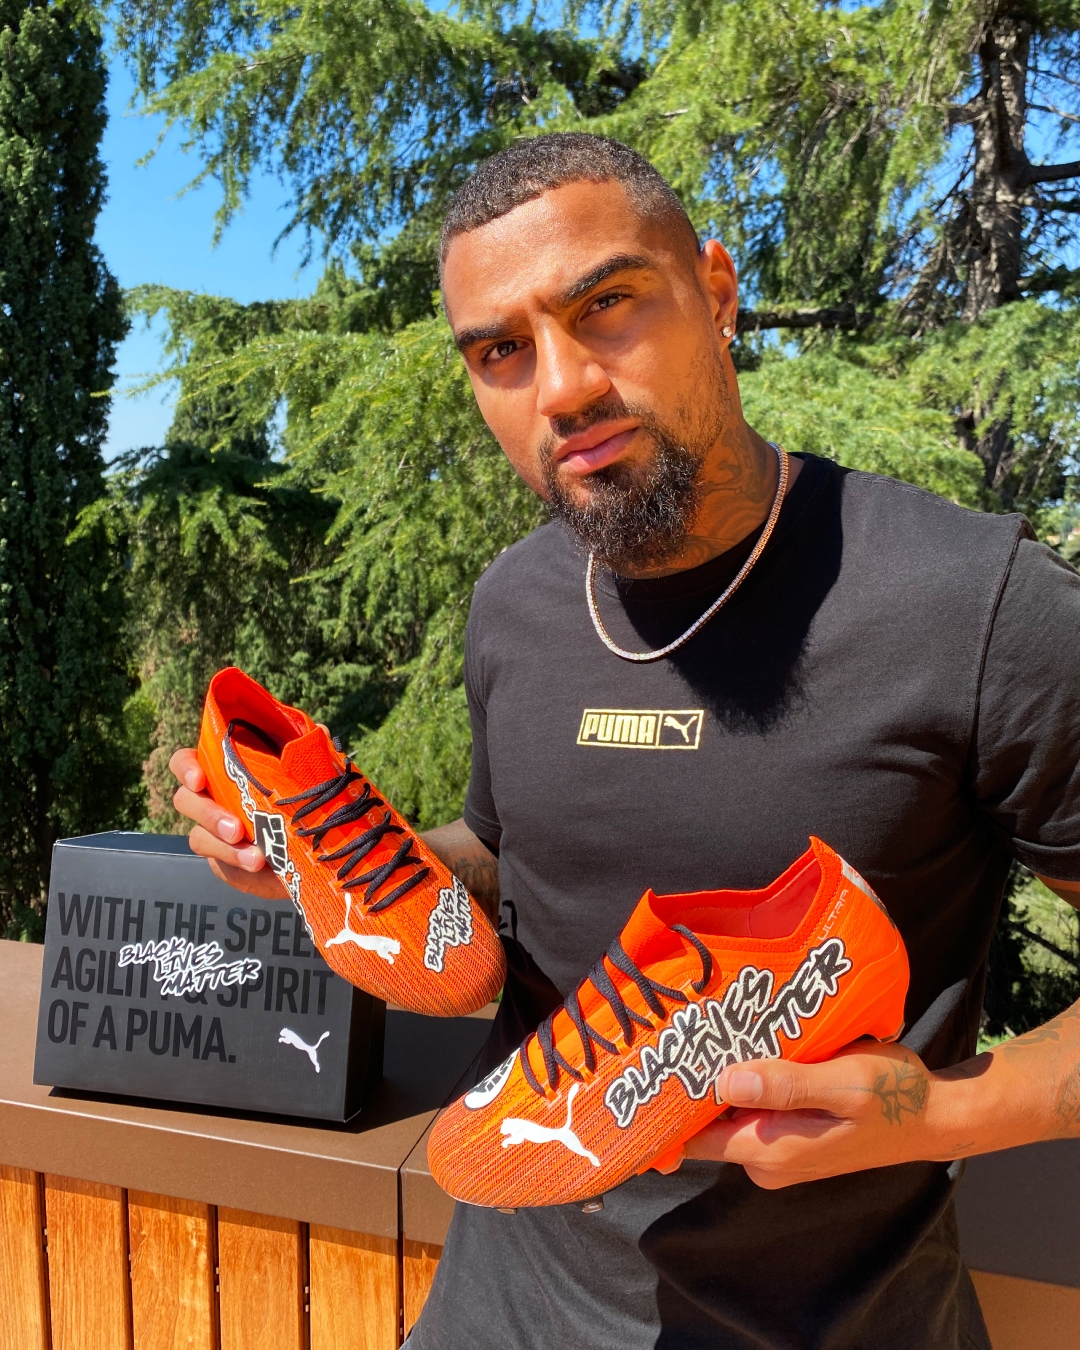 PUMA AND KEVIN PRINCE BOATENG PRESENT SPECIAL BLACK LIVES MATTER ULTRA FOOTBALL BOOTS